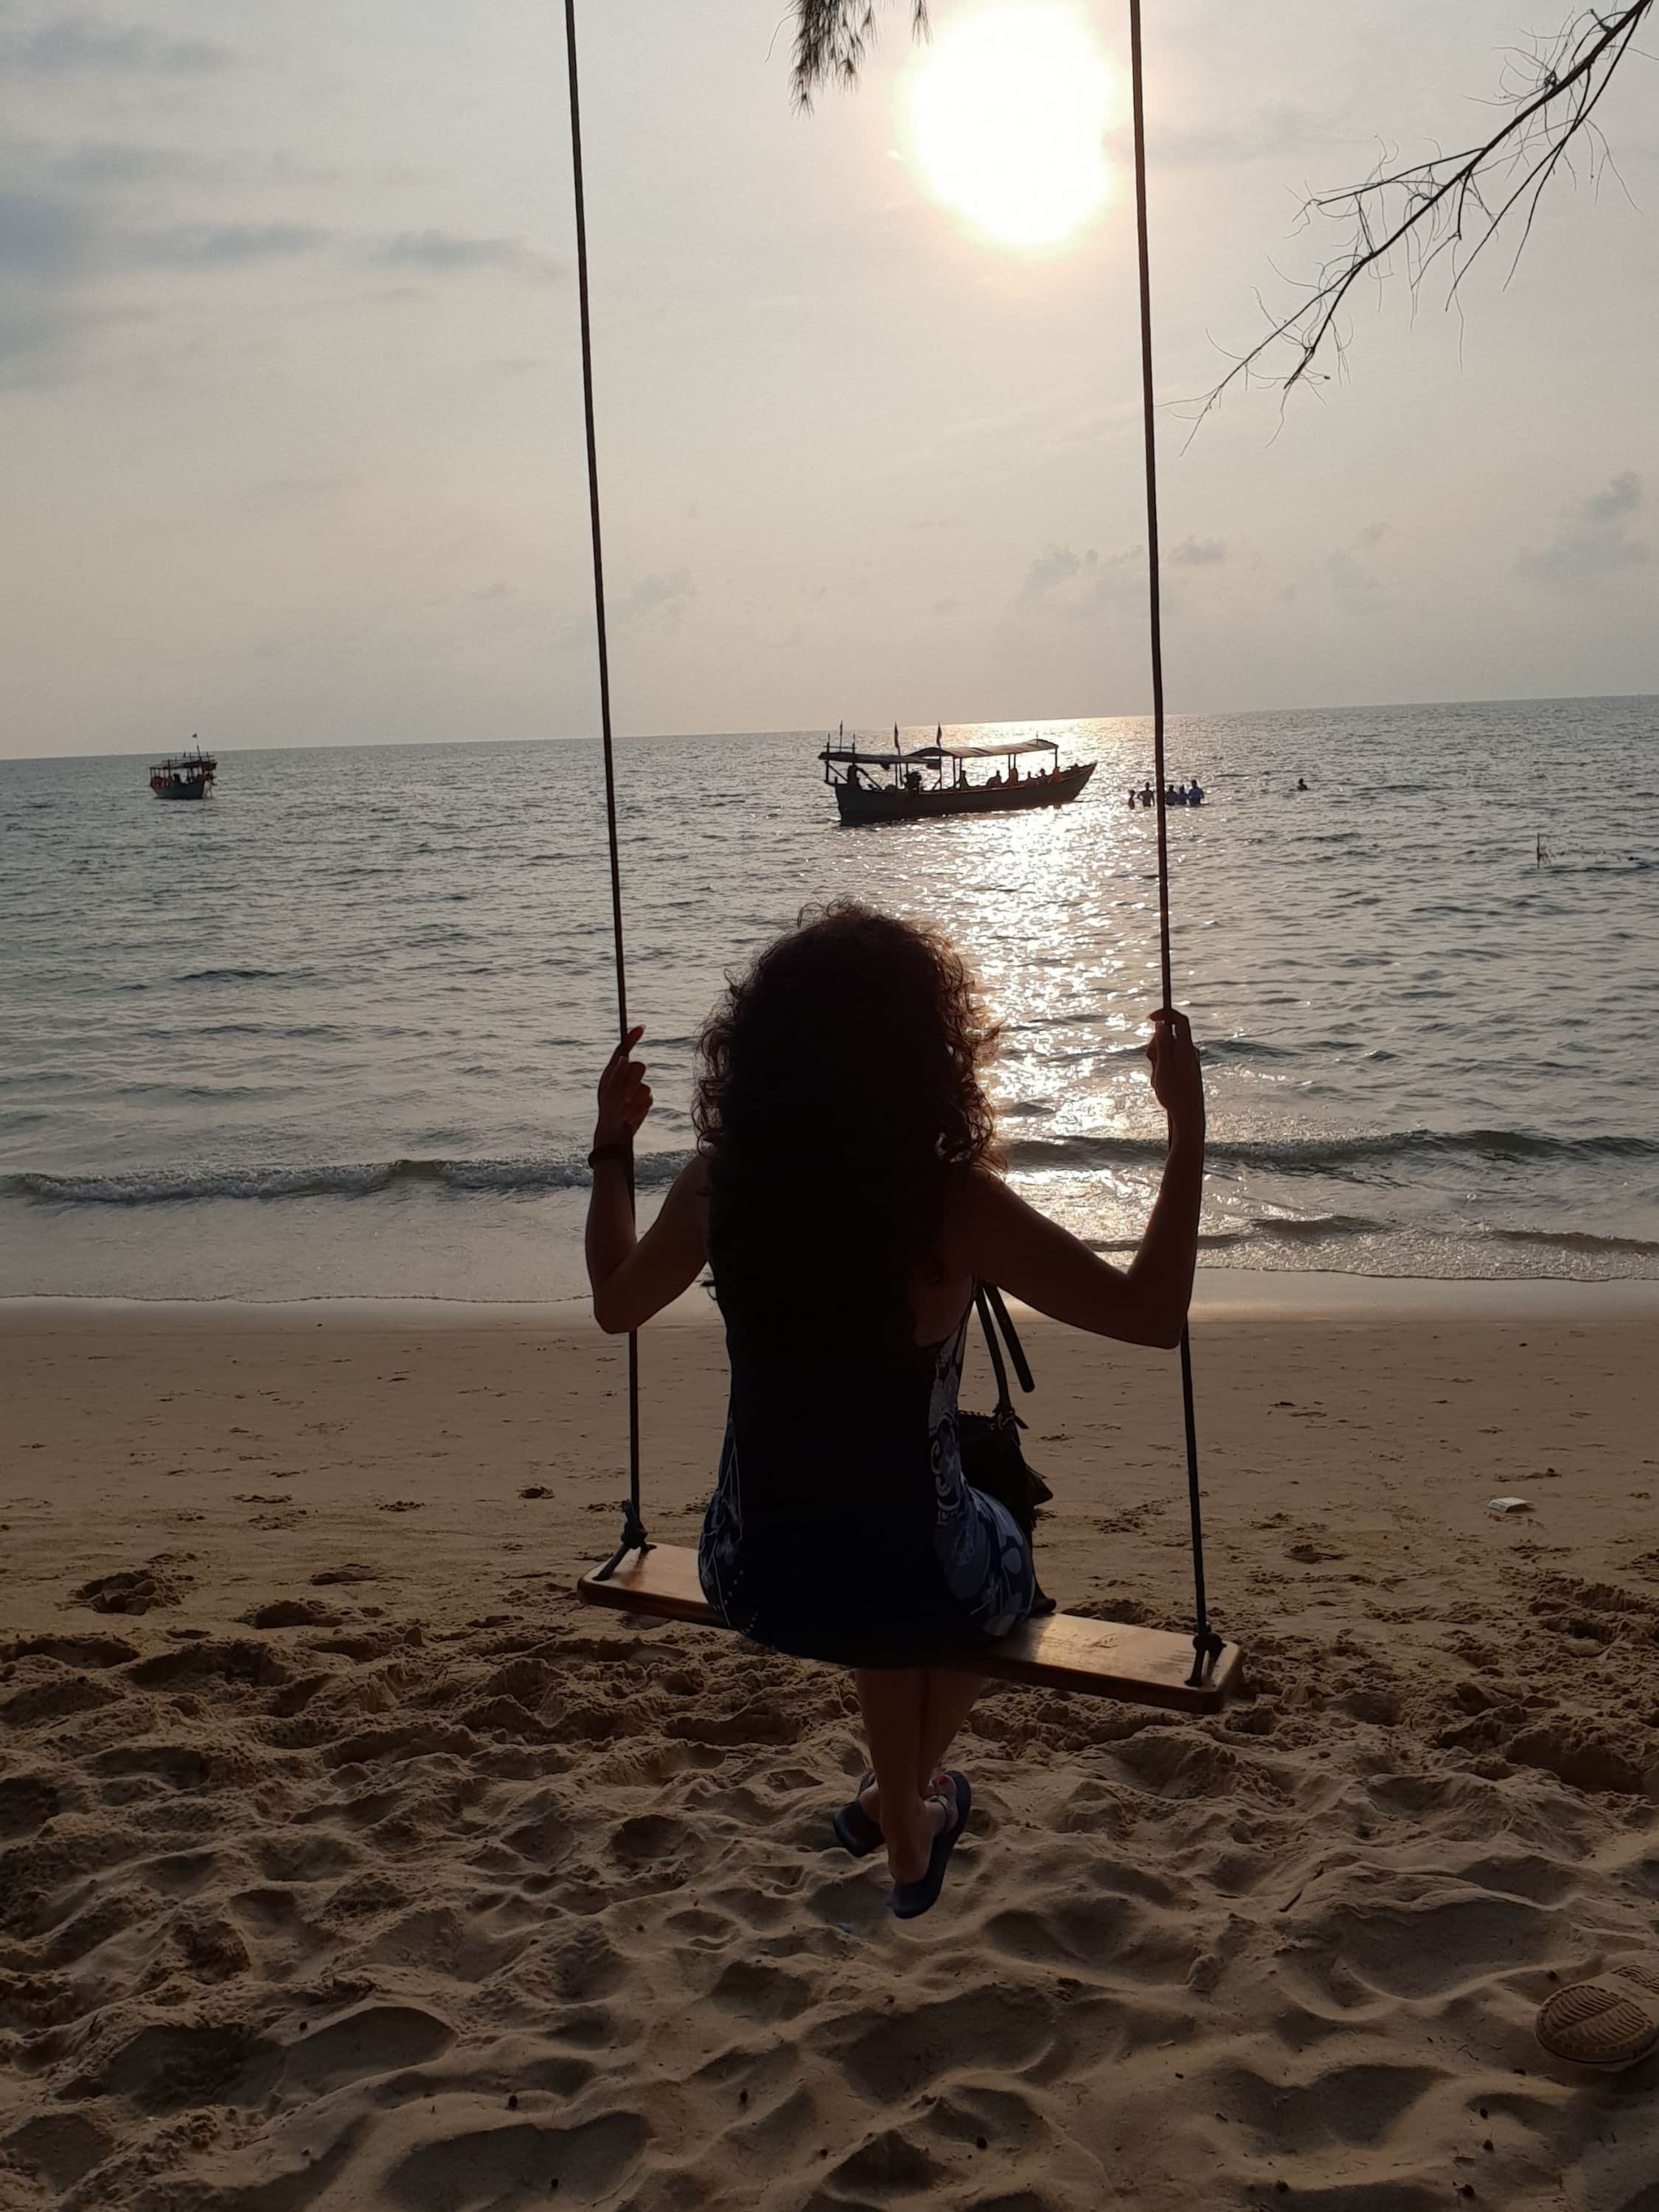 Girl on Swing at a beach watching the sun